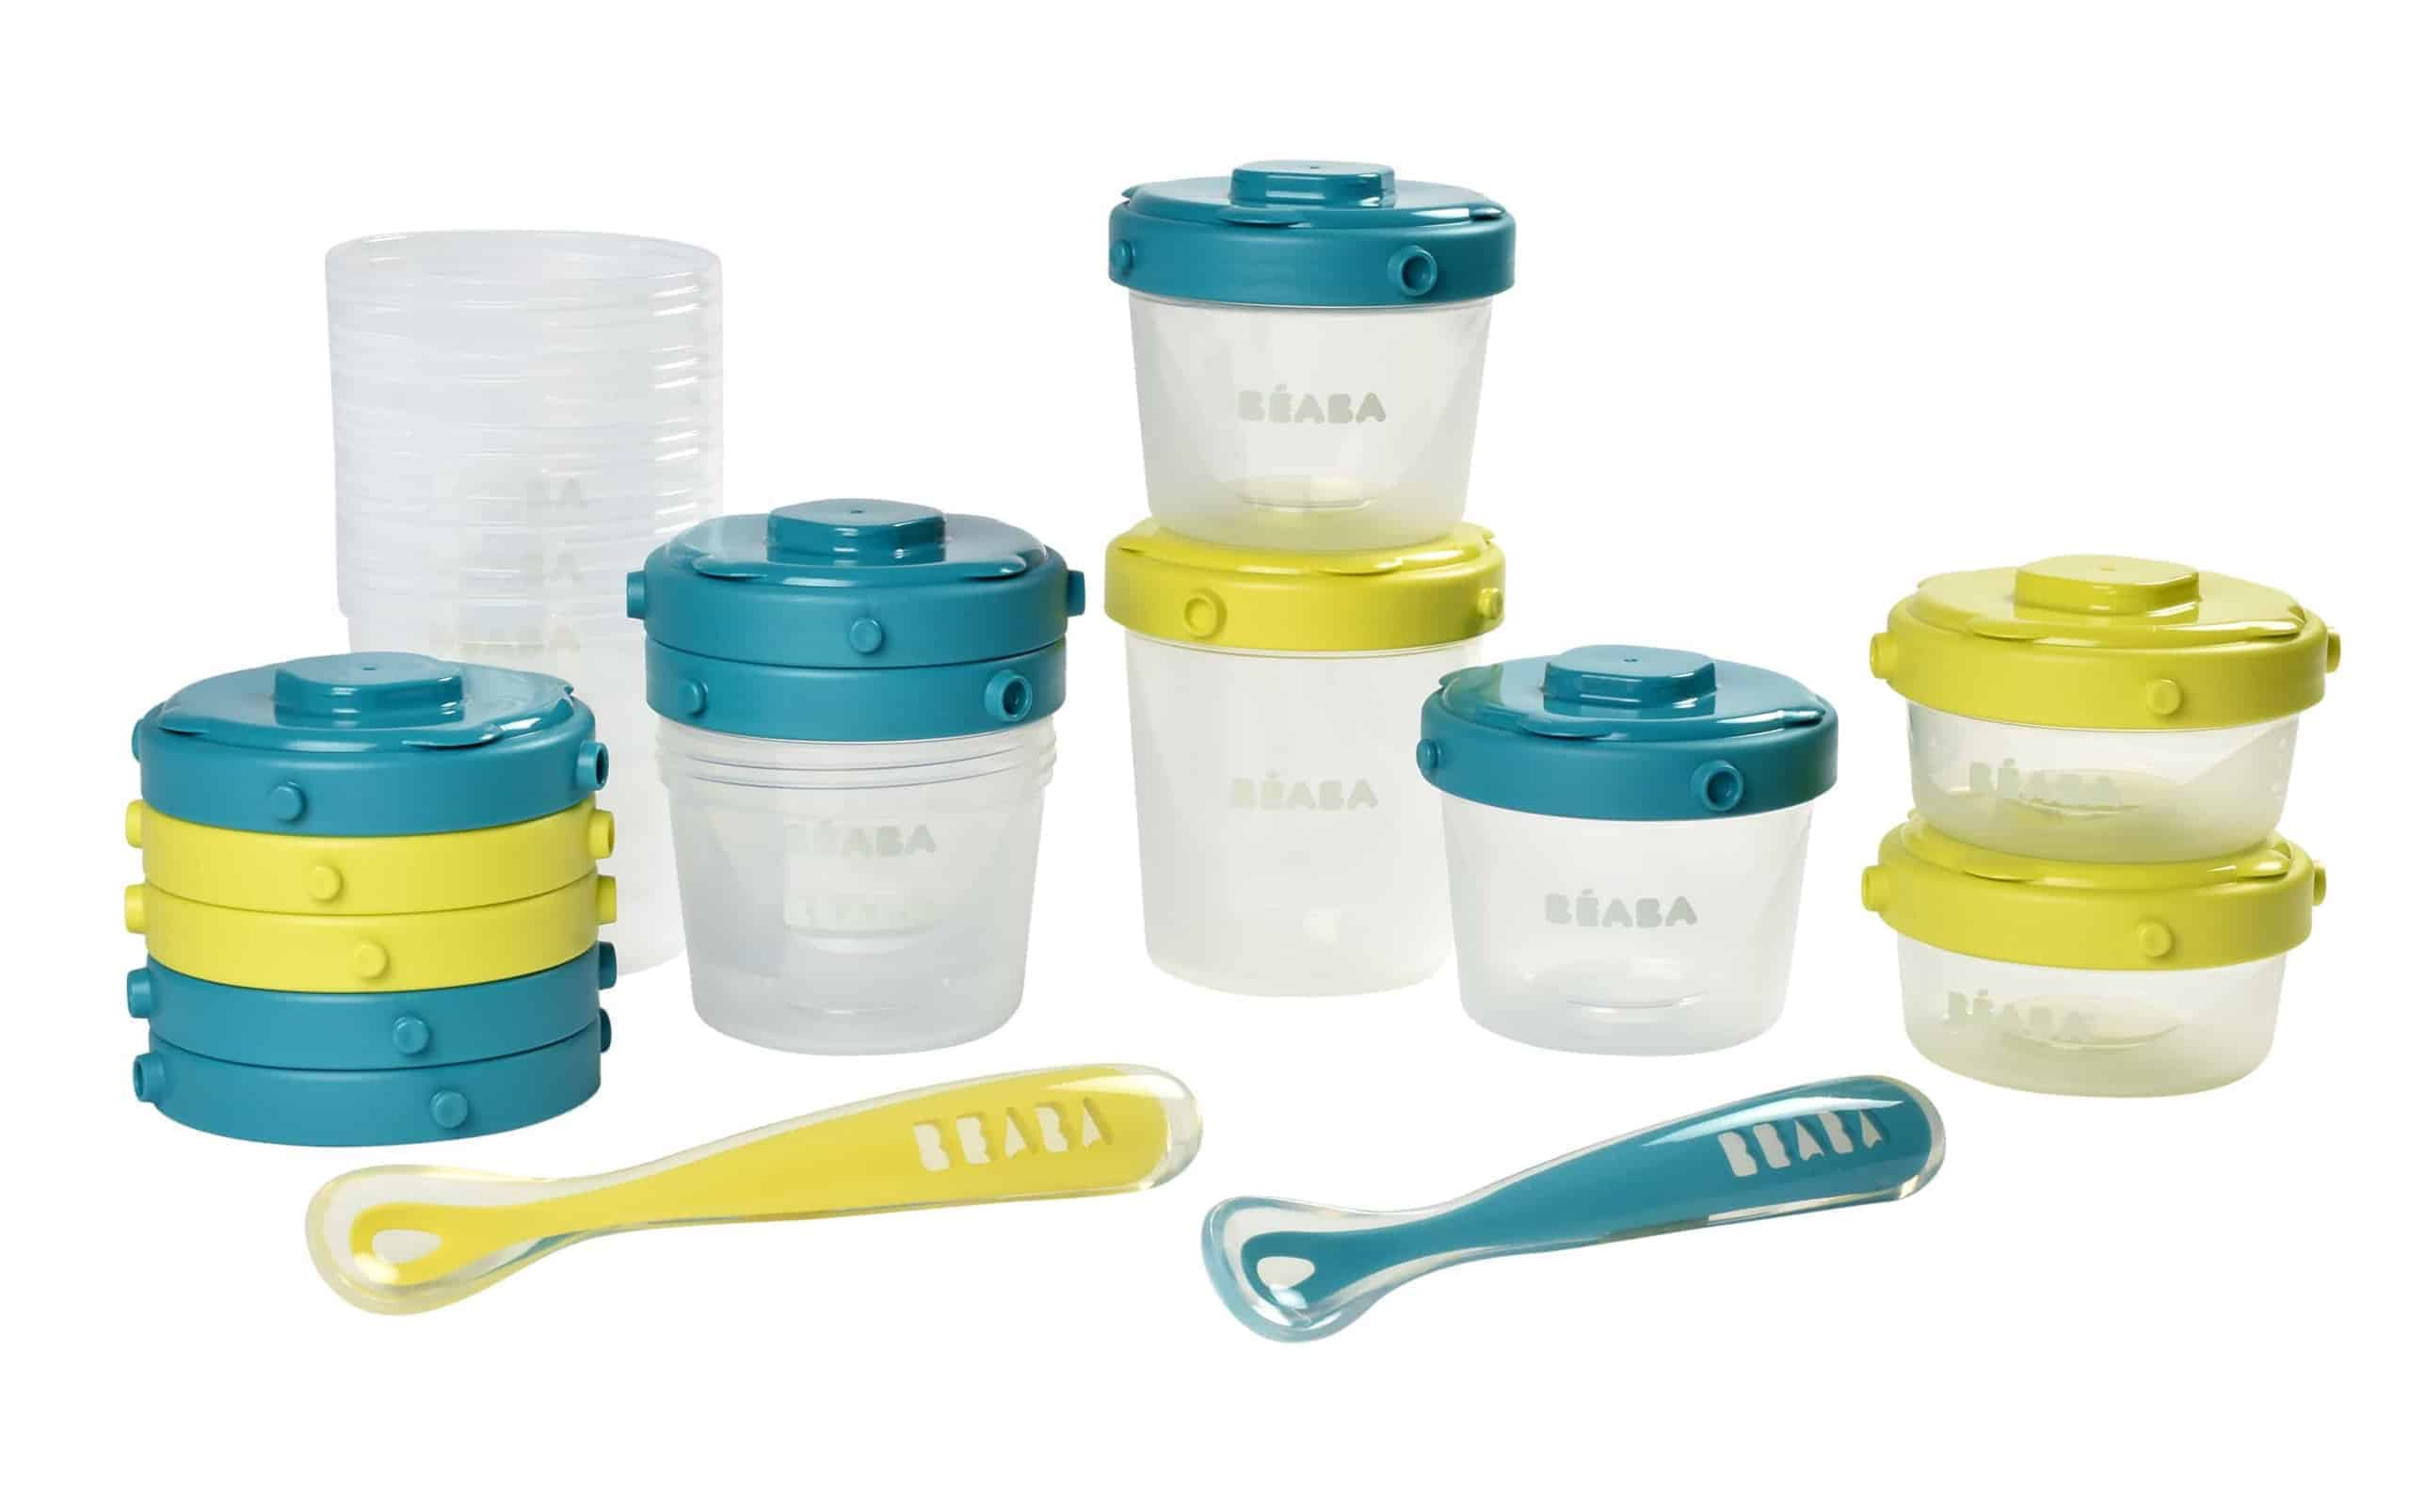 Peacock 4 oz and 7 oz for Snacks and Baby Food BEABA Clip Containers Set Also Includes 2 Silicone Spoons Set of 12 2 oz